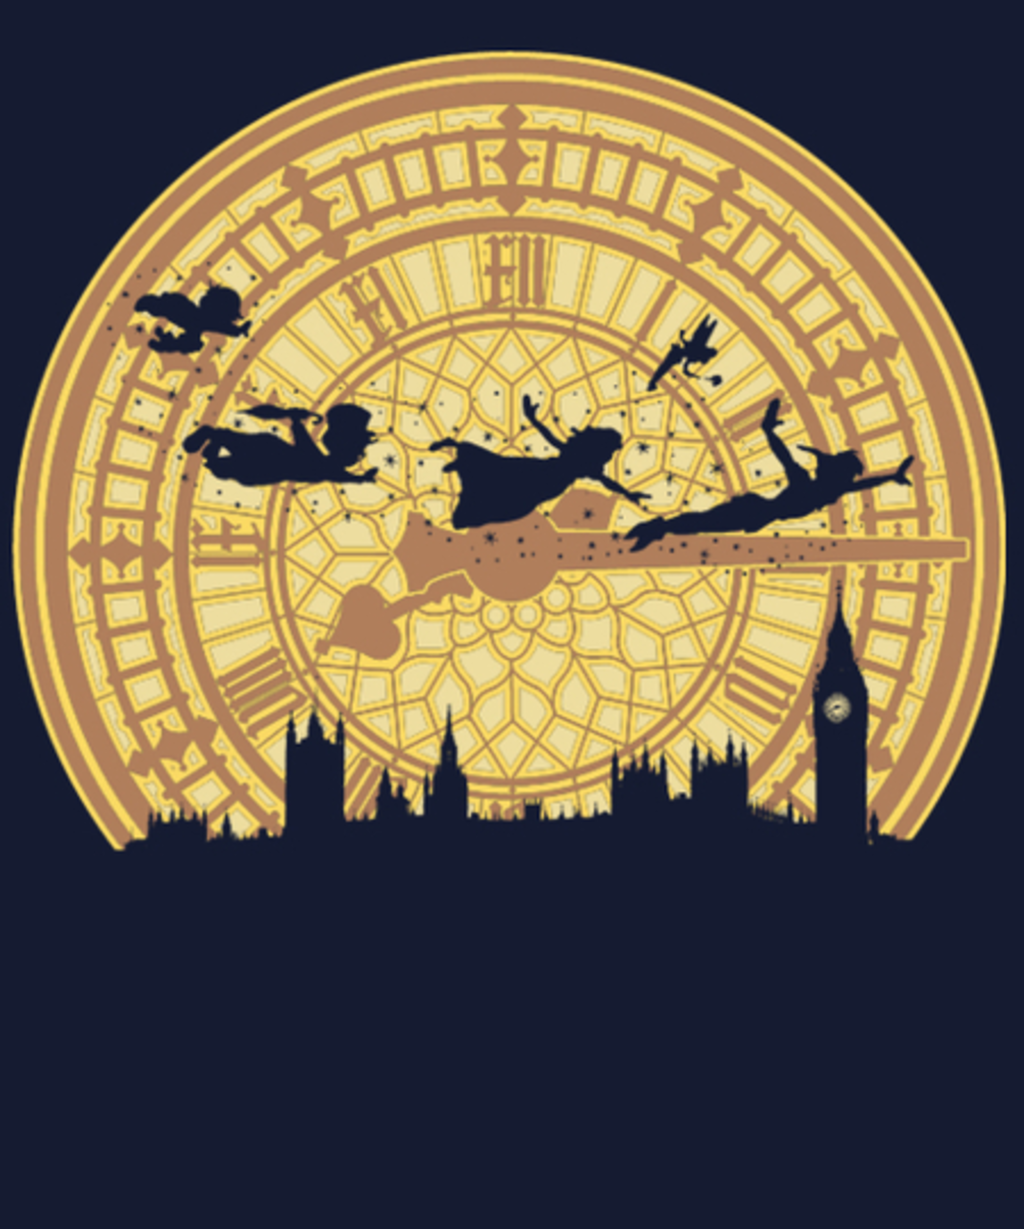 Qwertee: You can fly